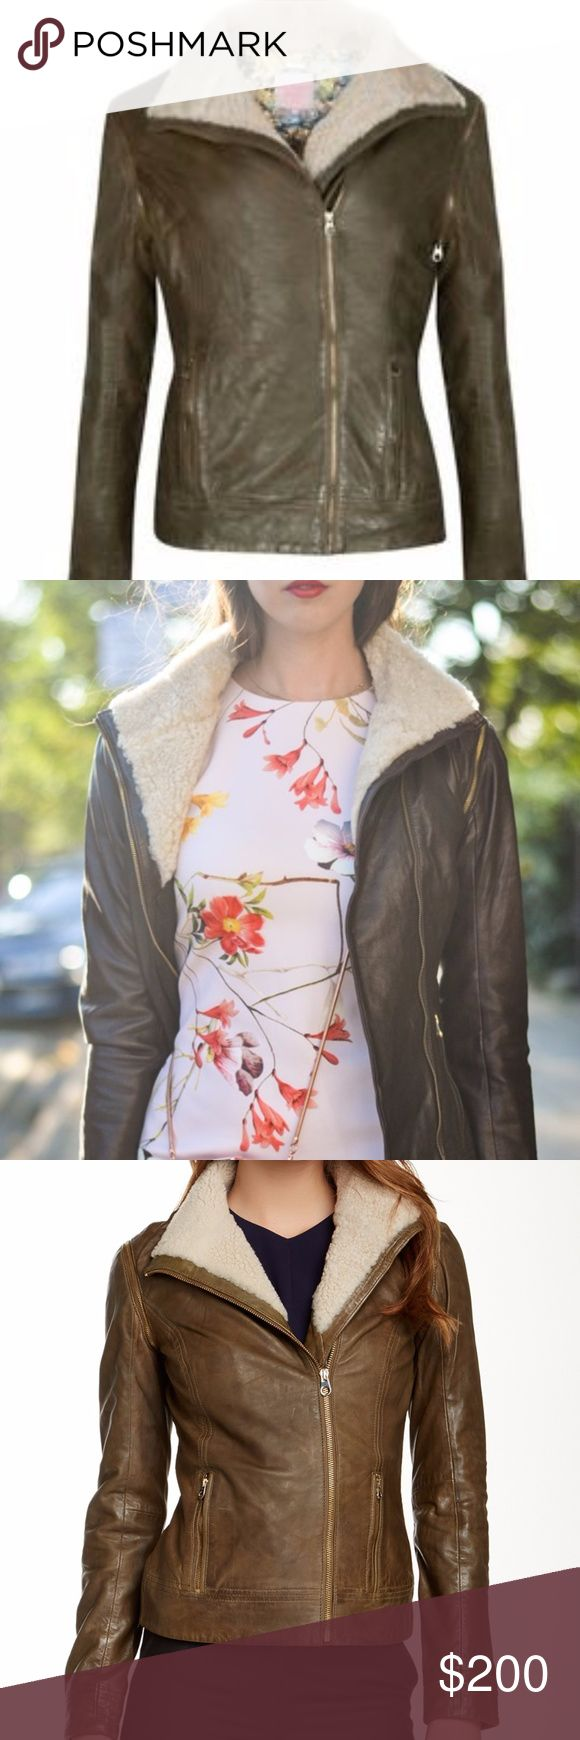 ⚡1 HR SALE⚡Ted Baker Sheep Fur Trim Leather Jacket Olive Green in Color - Fits like a US size 8/10 This incarnation of the classic leather jacket ups the ante with detachable sleeves that transform it into a tailored vest. Leave the piece open to show off the collar's plush sheep fur lining, or zip it up when you're ready to ride. Front asymmetrical zip closure. Front zip pockets. Detachable zip-off sleeves. Lined. Leather with genuine sheep fur Professional leather clean. By Ted Baker…